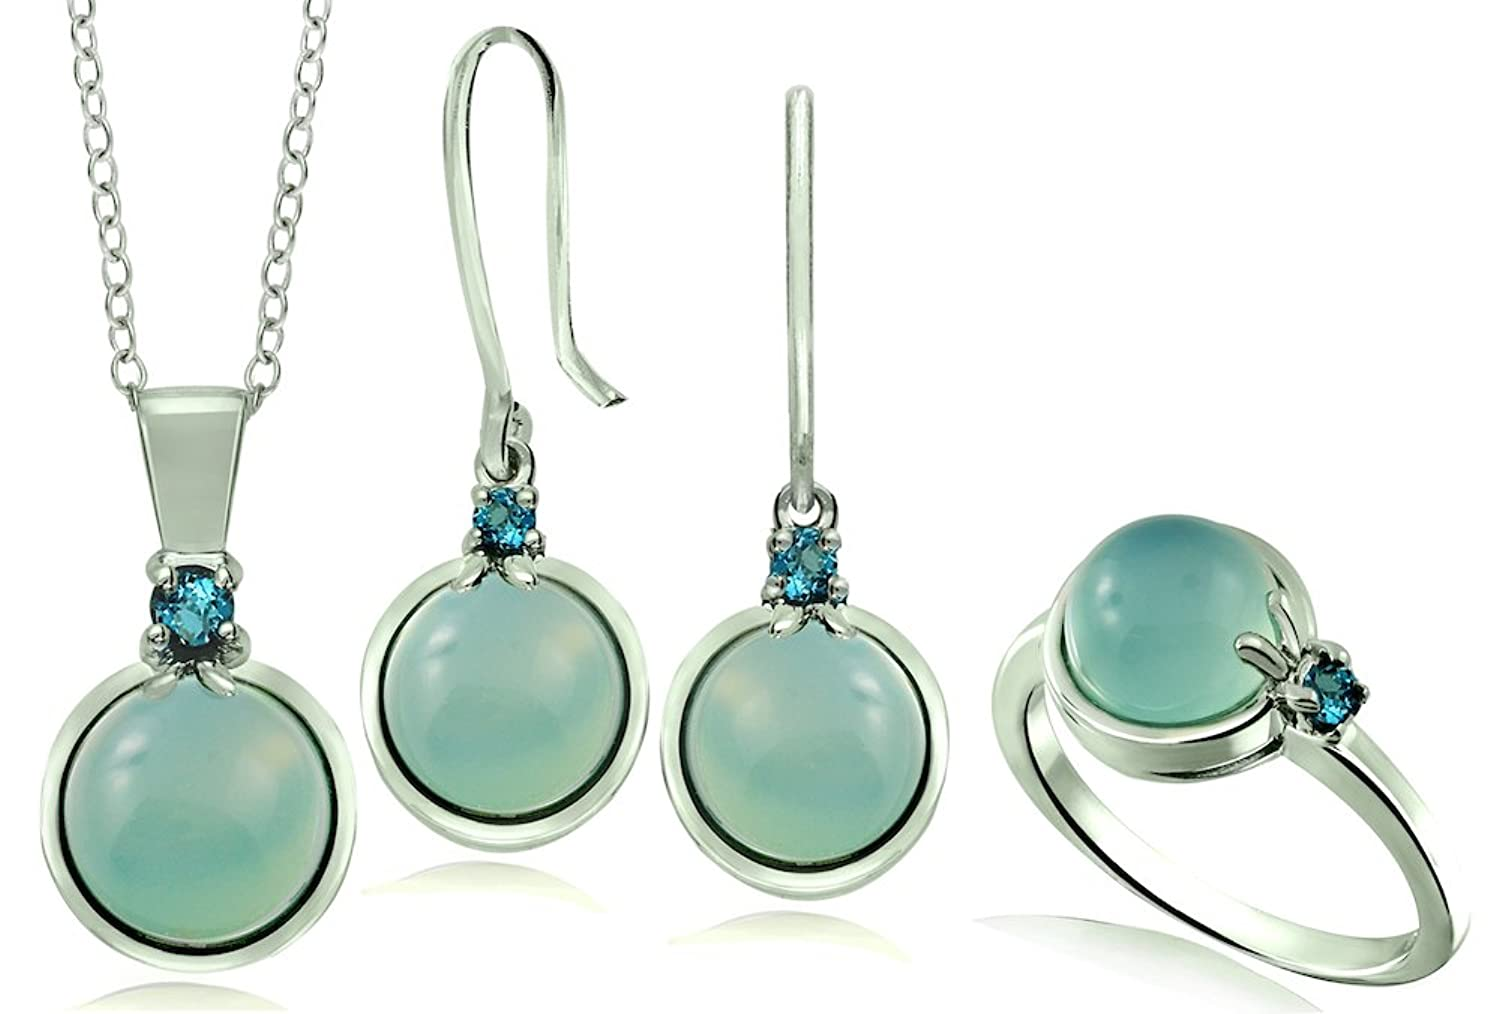 10.56 Carats Blue Chalcedony with London Blue Topaz Rhodium-Plated 925 Sterling Silver Jewelry Set